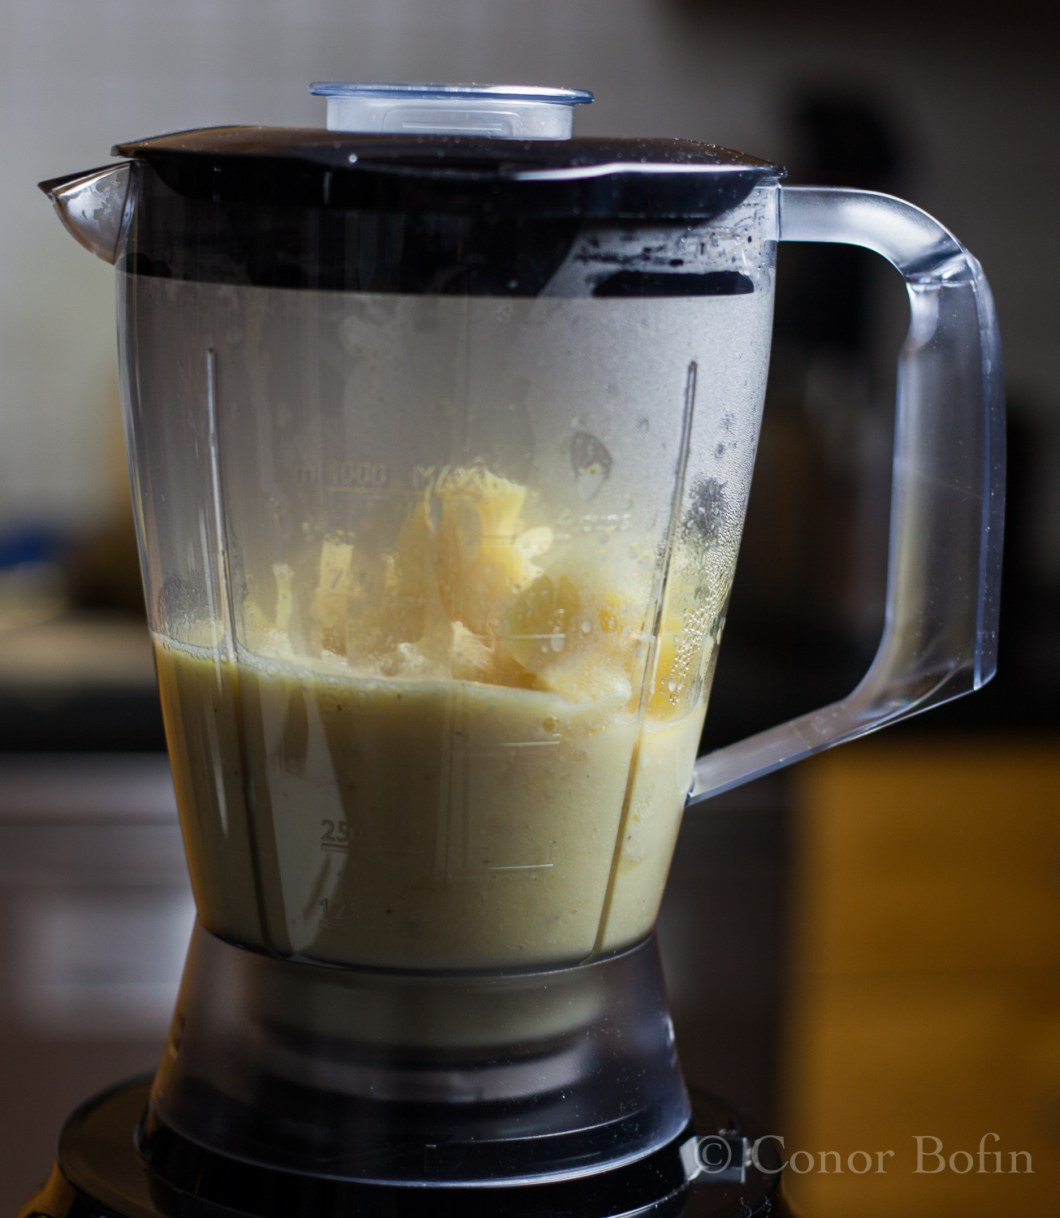 My crappy blender needed to be jiggled to get it to purée the parsnips.